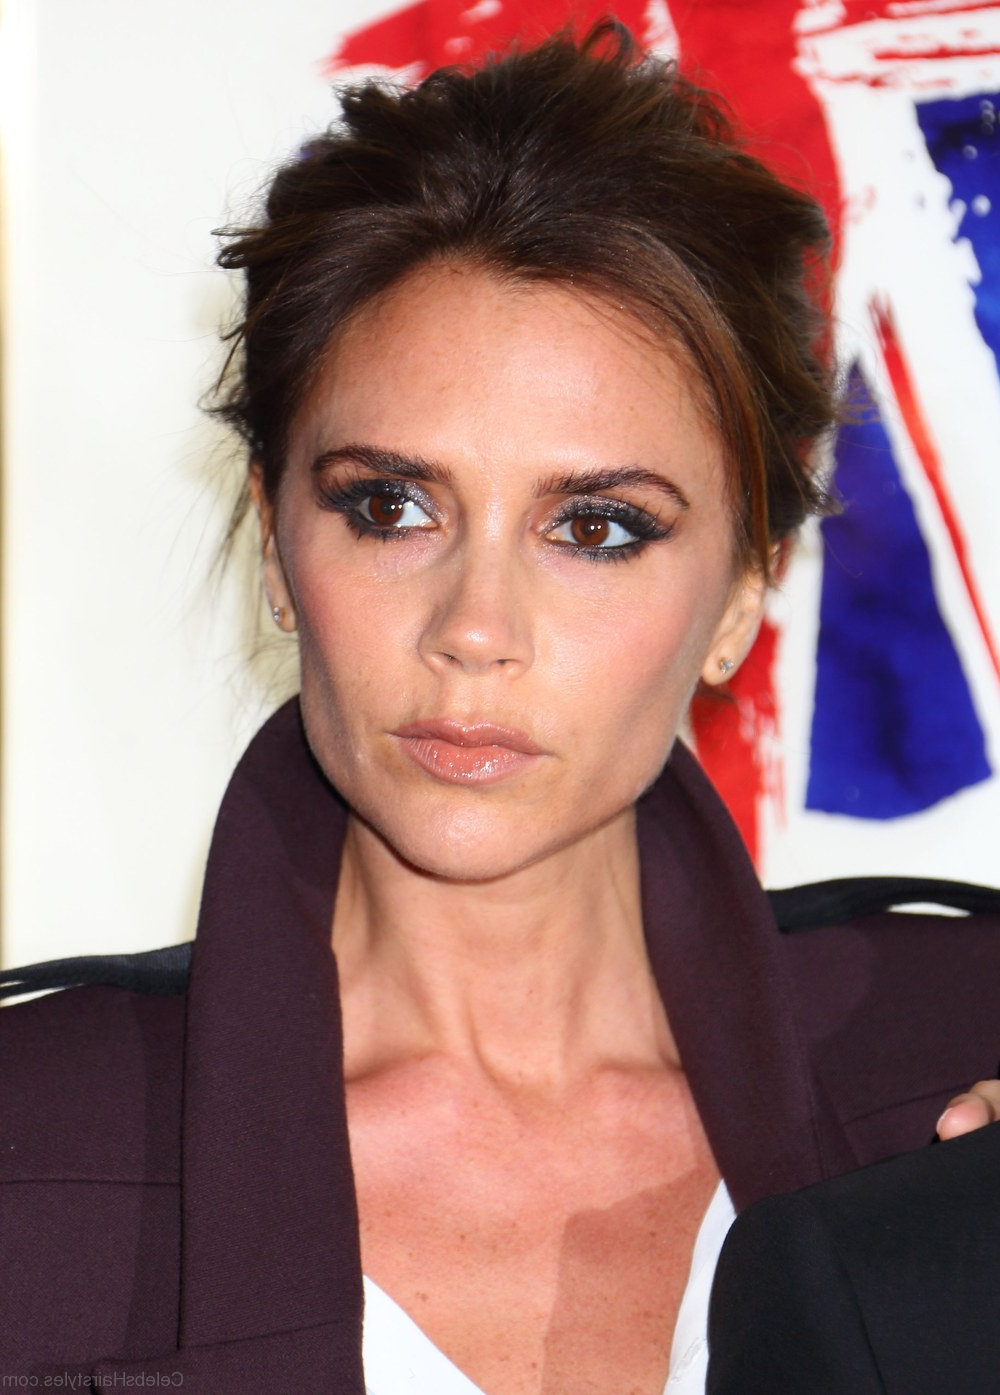 47 Classic Hairstyles Of Victoria Beckham With Victoria Beckham Short Hairstyles (View 24 of 25)